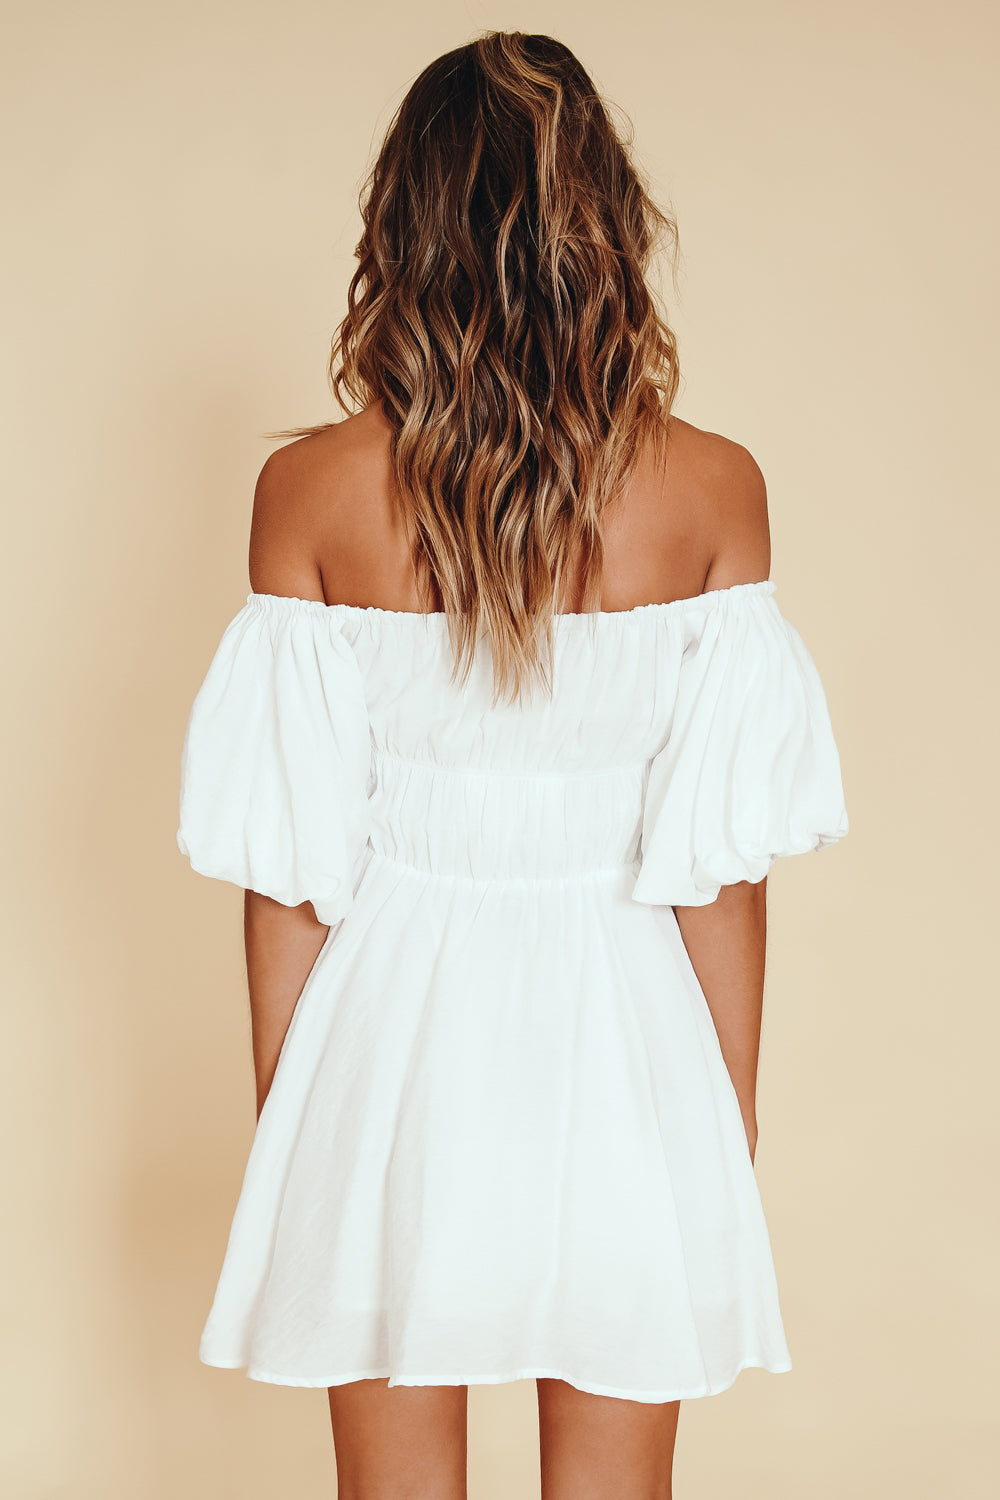 Paris Is Calling Mini Dress // White